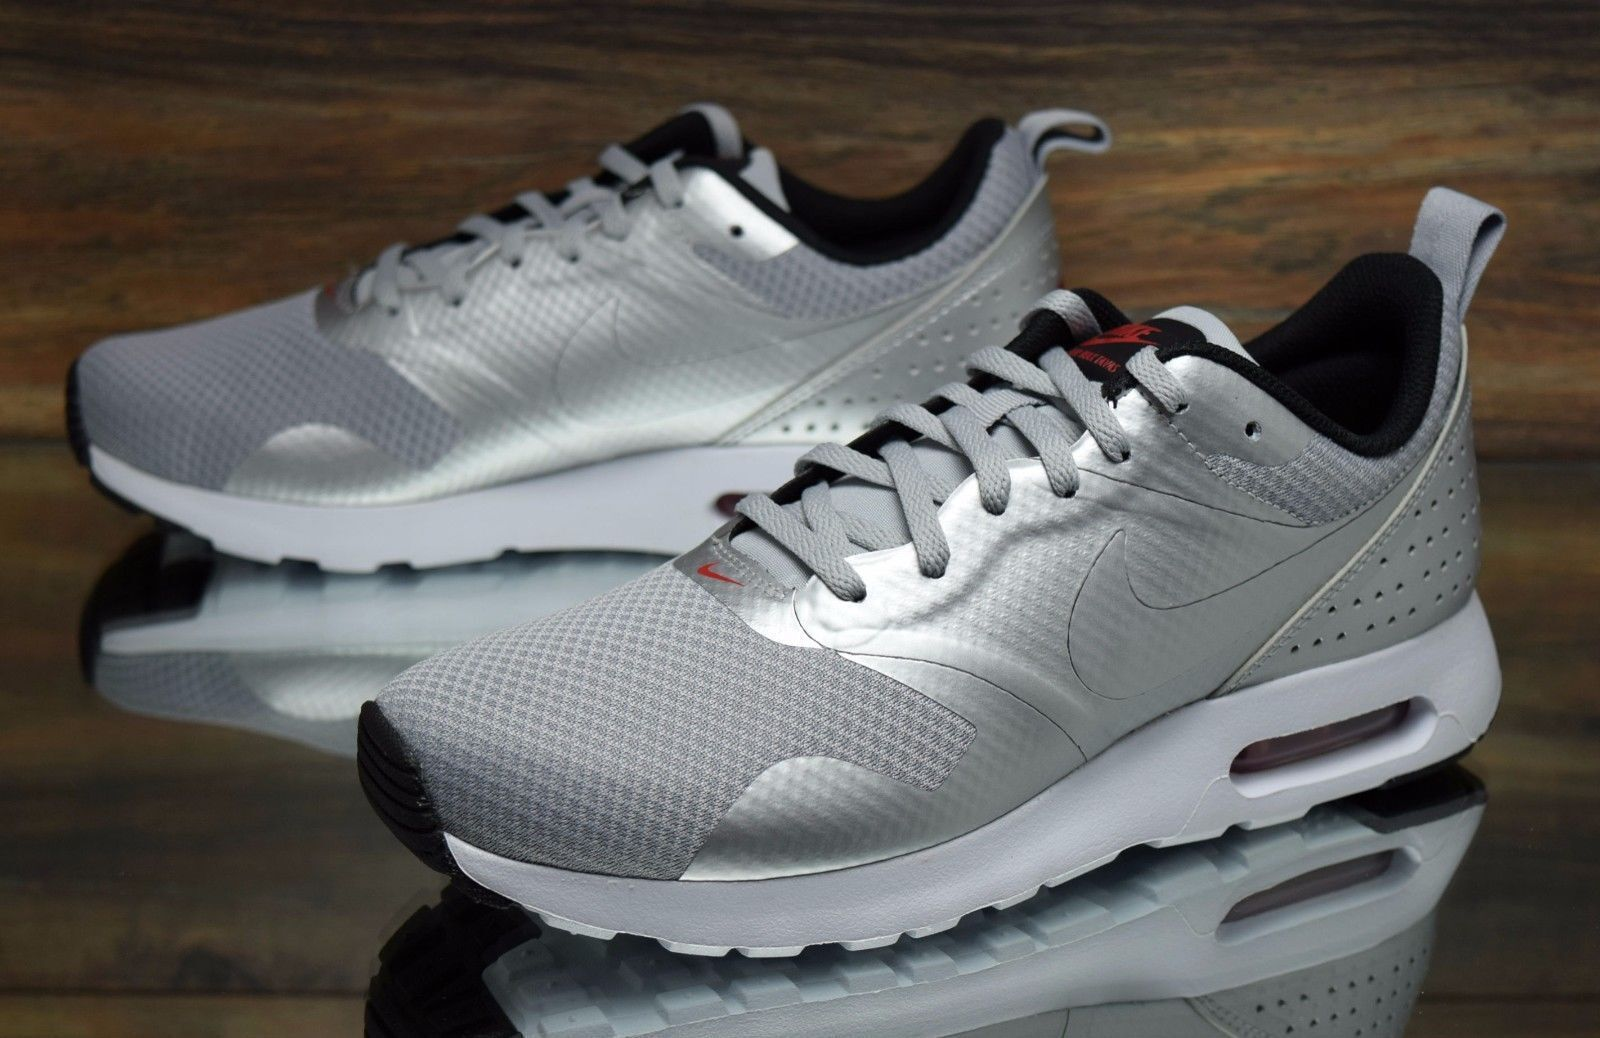 2df68cced955 Nike Air Max Tavas Tavas Tavas Women s shoes Metallic Silver Size 7  8  (916791